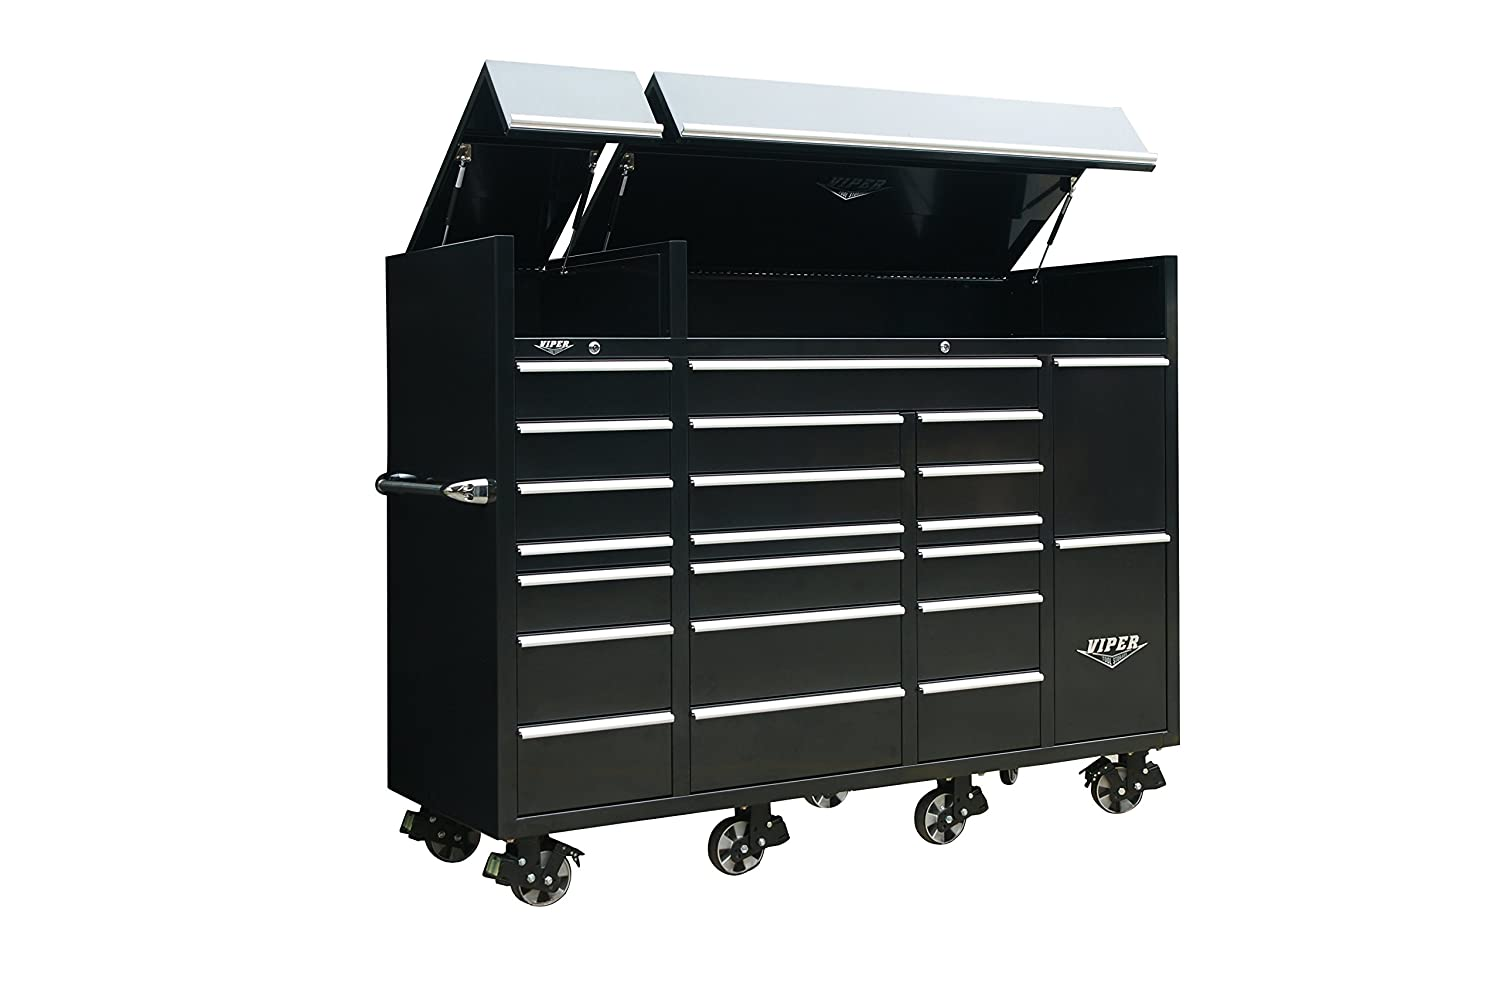 Attractive Amazon.com: Viper Tool Storage VP7218BL 72 Inch 18 Drawer 18G Steel Rolling Tool  Cabinet, Black: Home Improvement